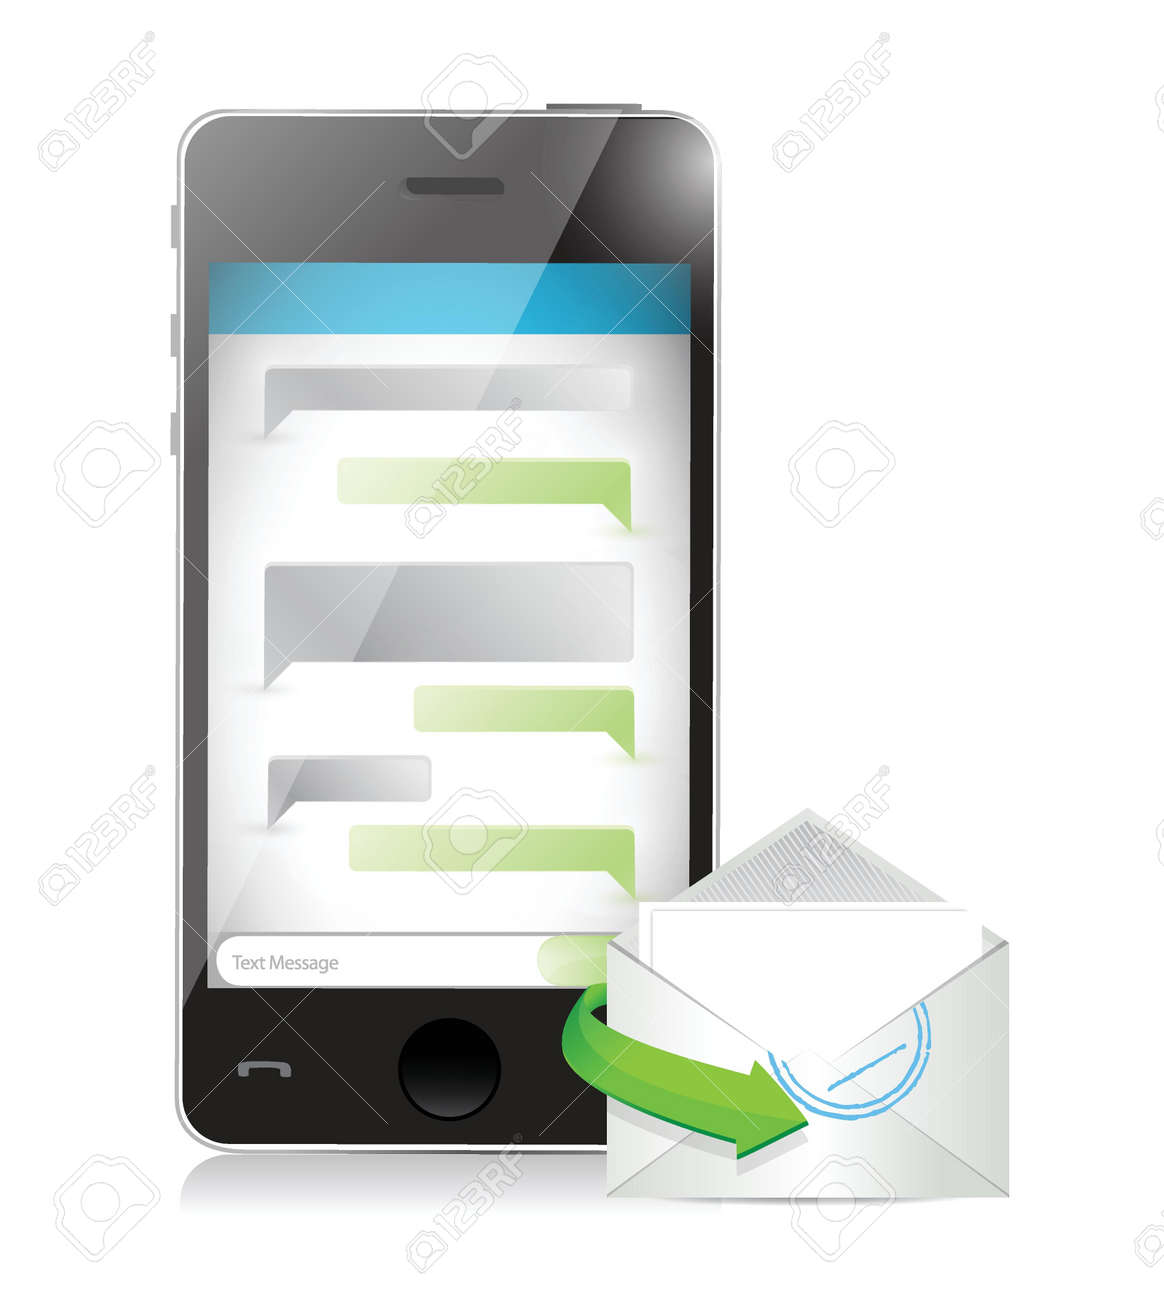 mail communication concept illustration design over a white background Stock Vector - 21506159